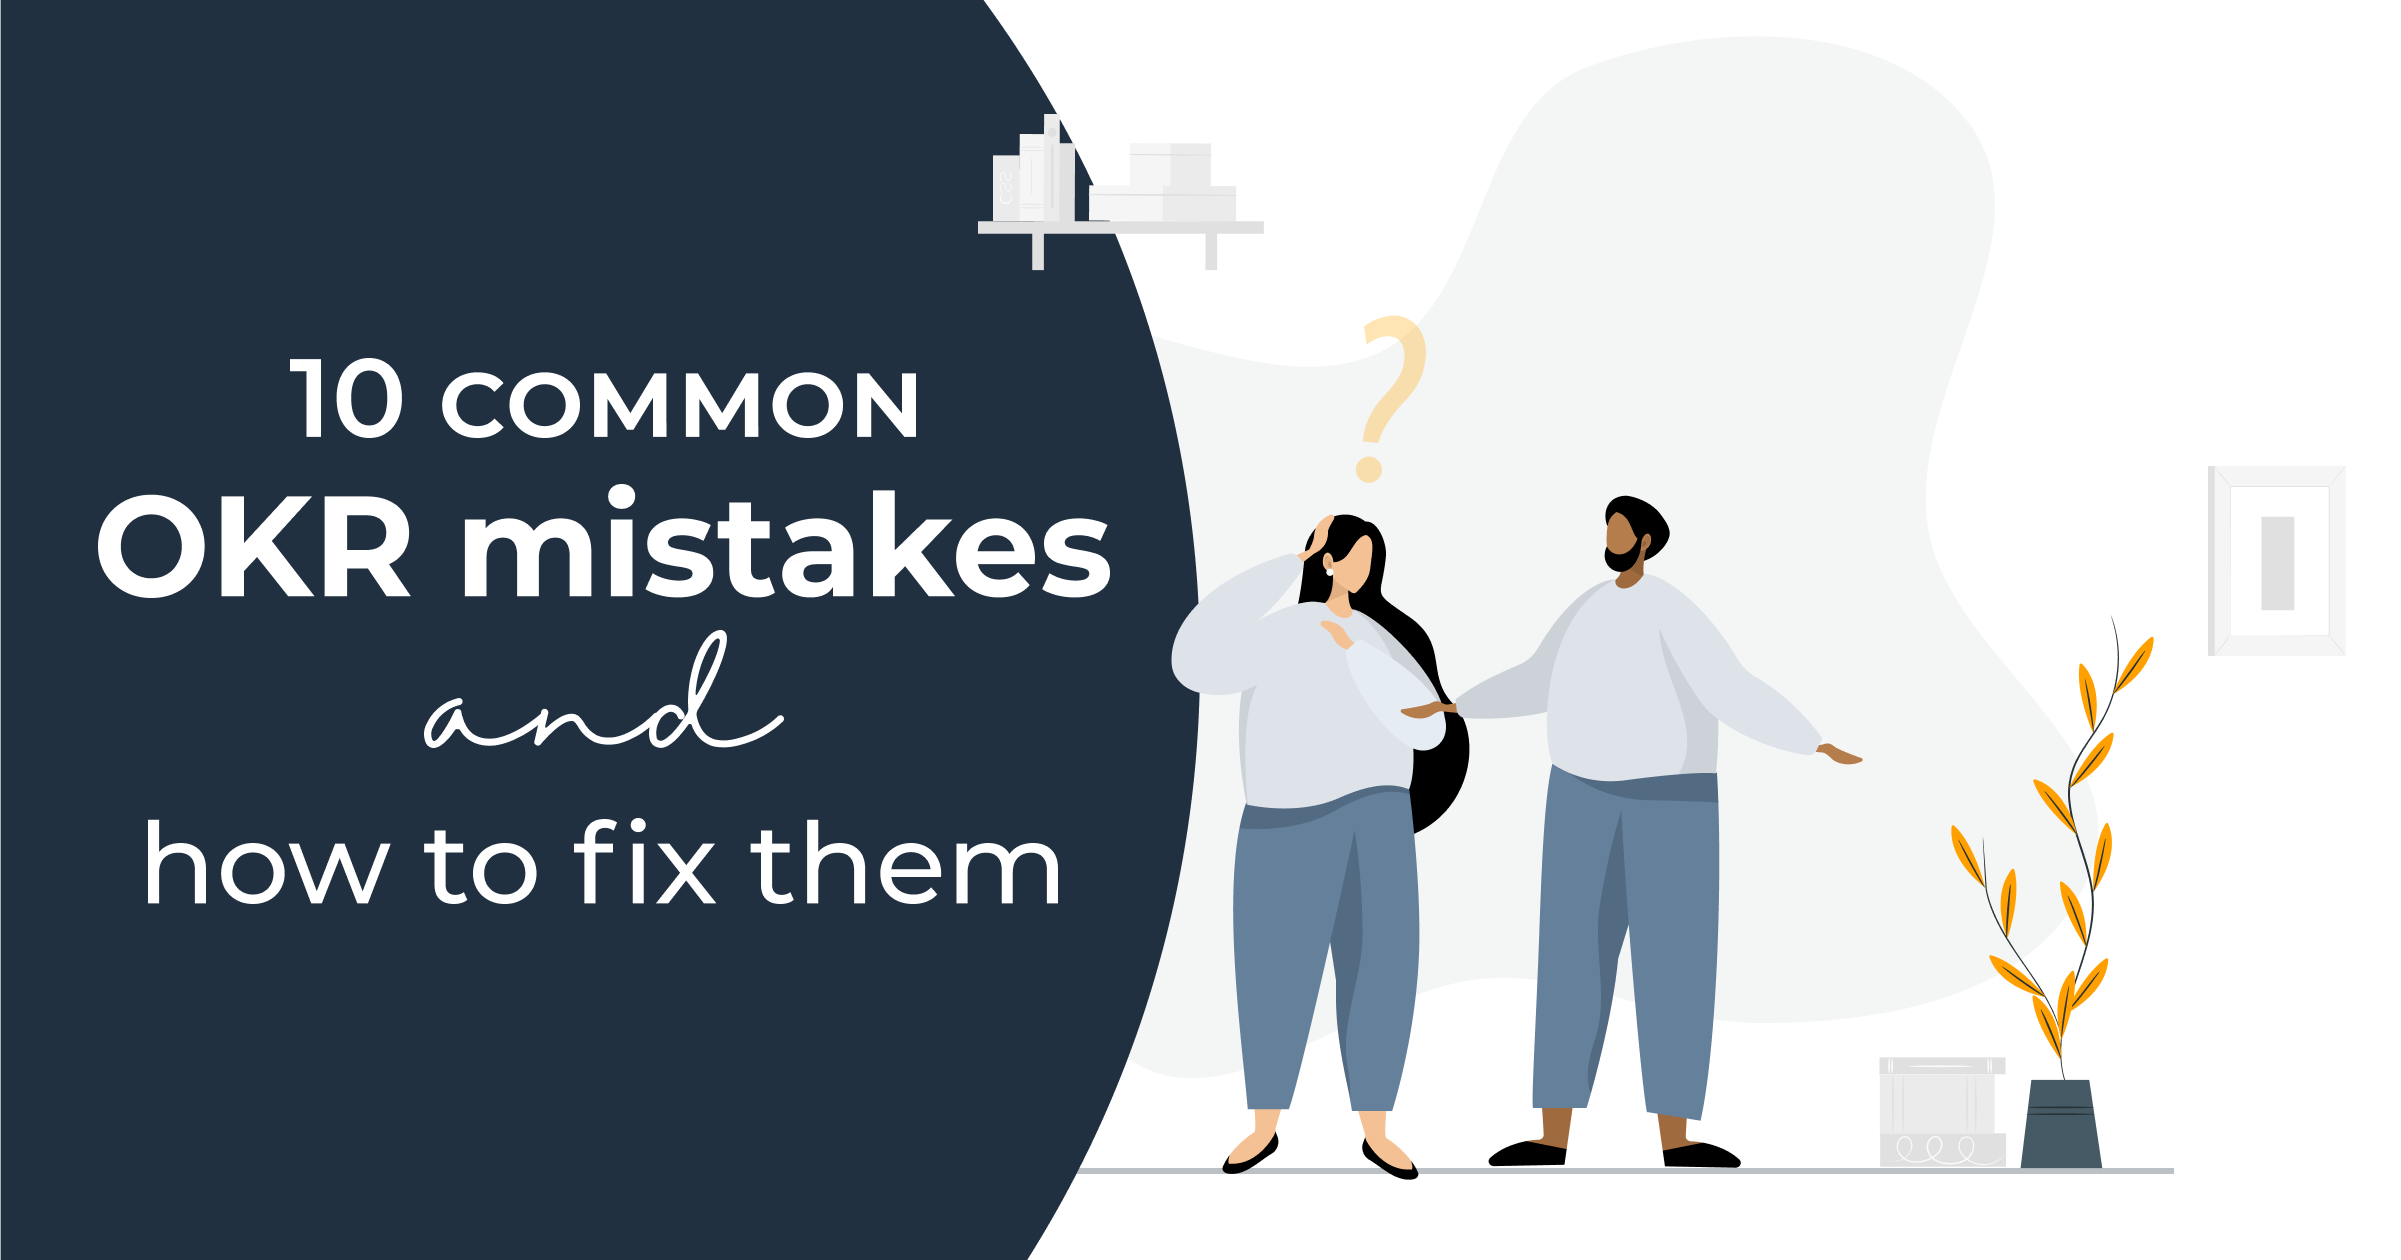 10 Common OKR Mistakes & How to Fix Them